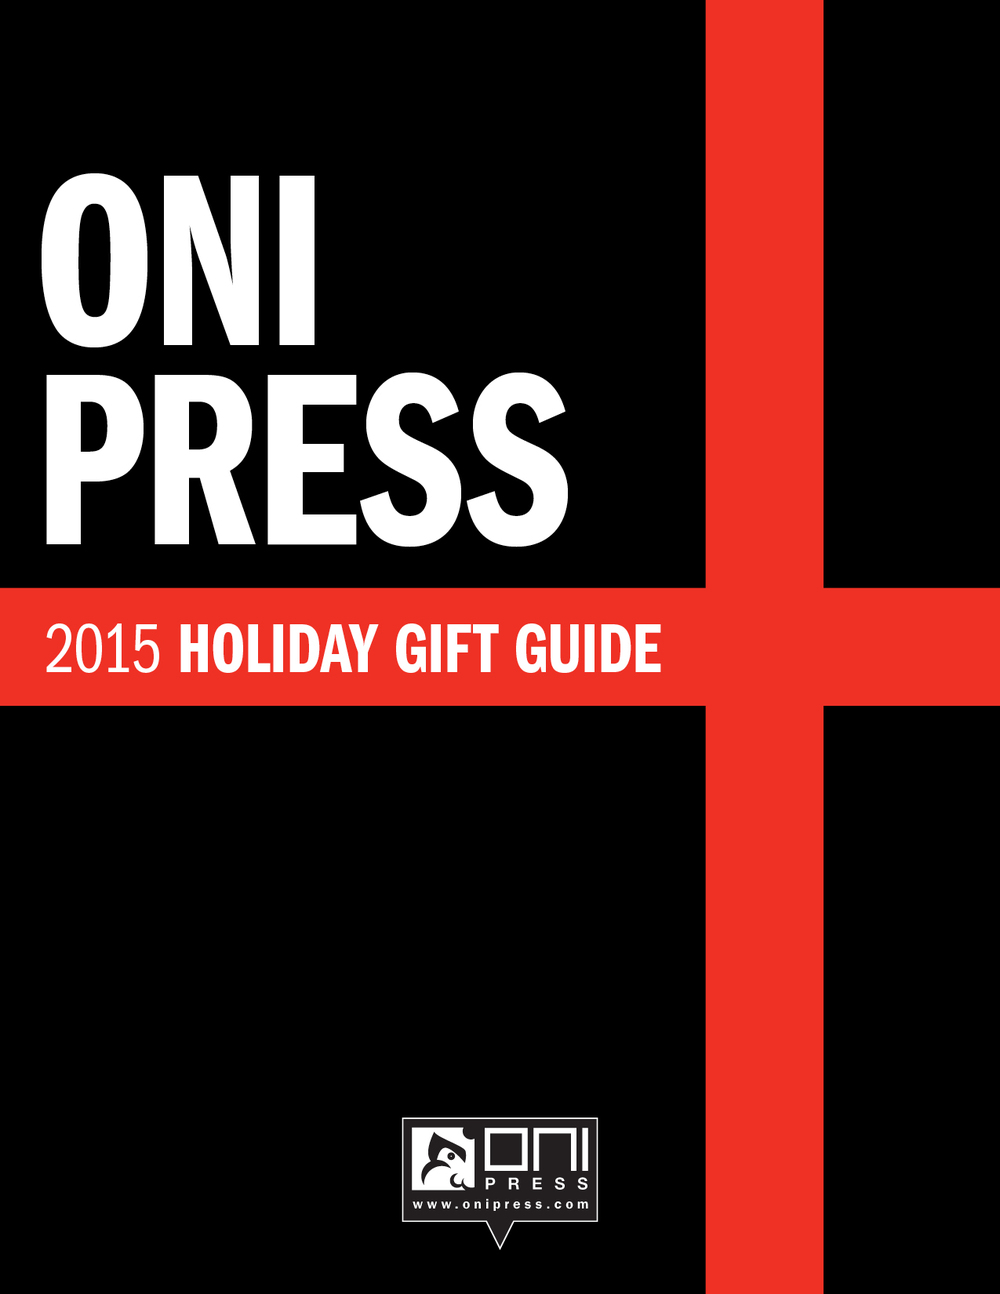 onipress: We at Oni Press know how incredibly difficult it is to shop for friends and family around the holidays. There's always that second cousin twice removed with fuzzy interests, the sister-in-law that sorta likes knitting (or was it deep-sea fishing?), or the office co-worker who hasn't updated their Facebook like pages in a million years. How are you supposed to get them a gift if they won't update their Facebook like pages?!? Well, fret no longer because Oni Press is providing you with the ULTIMATE HOLIDAY GIFT GUIDE! Keep reading